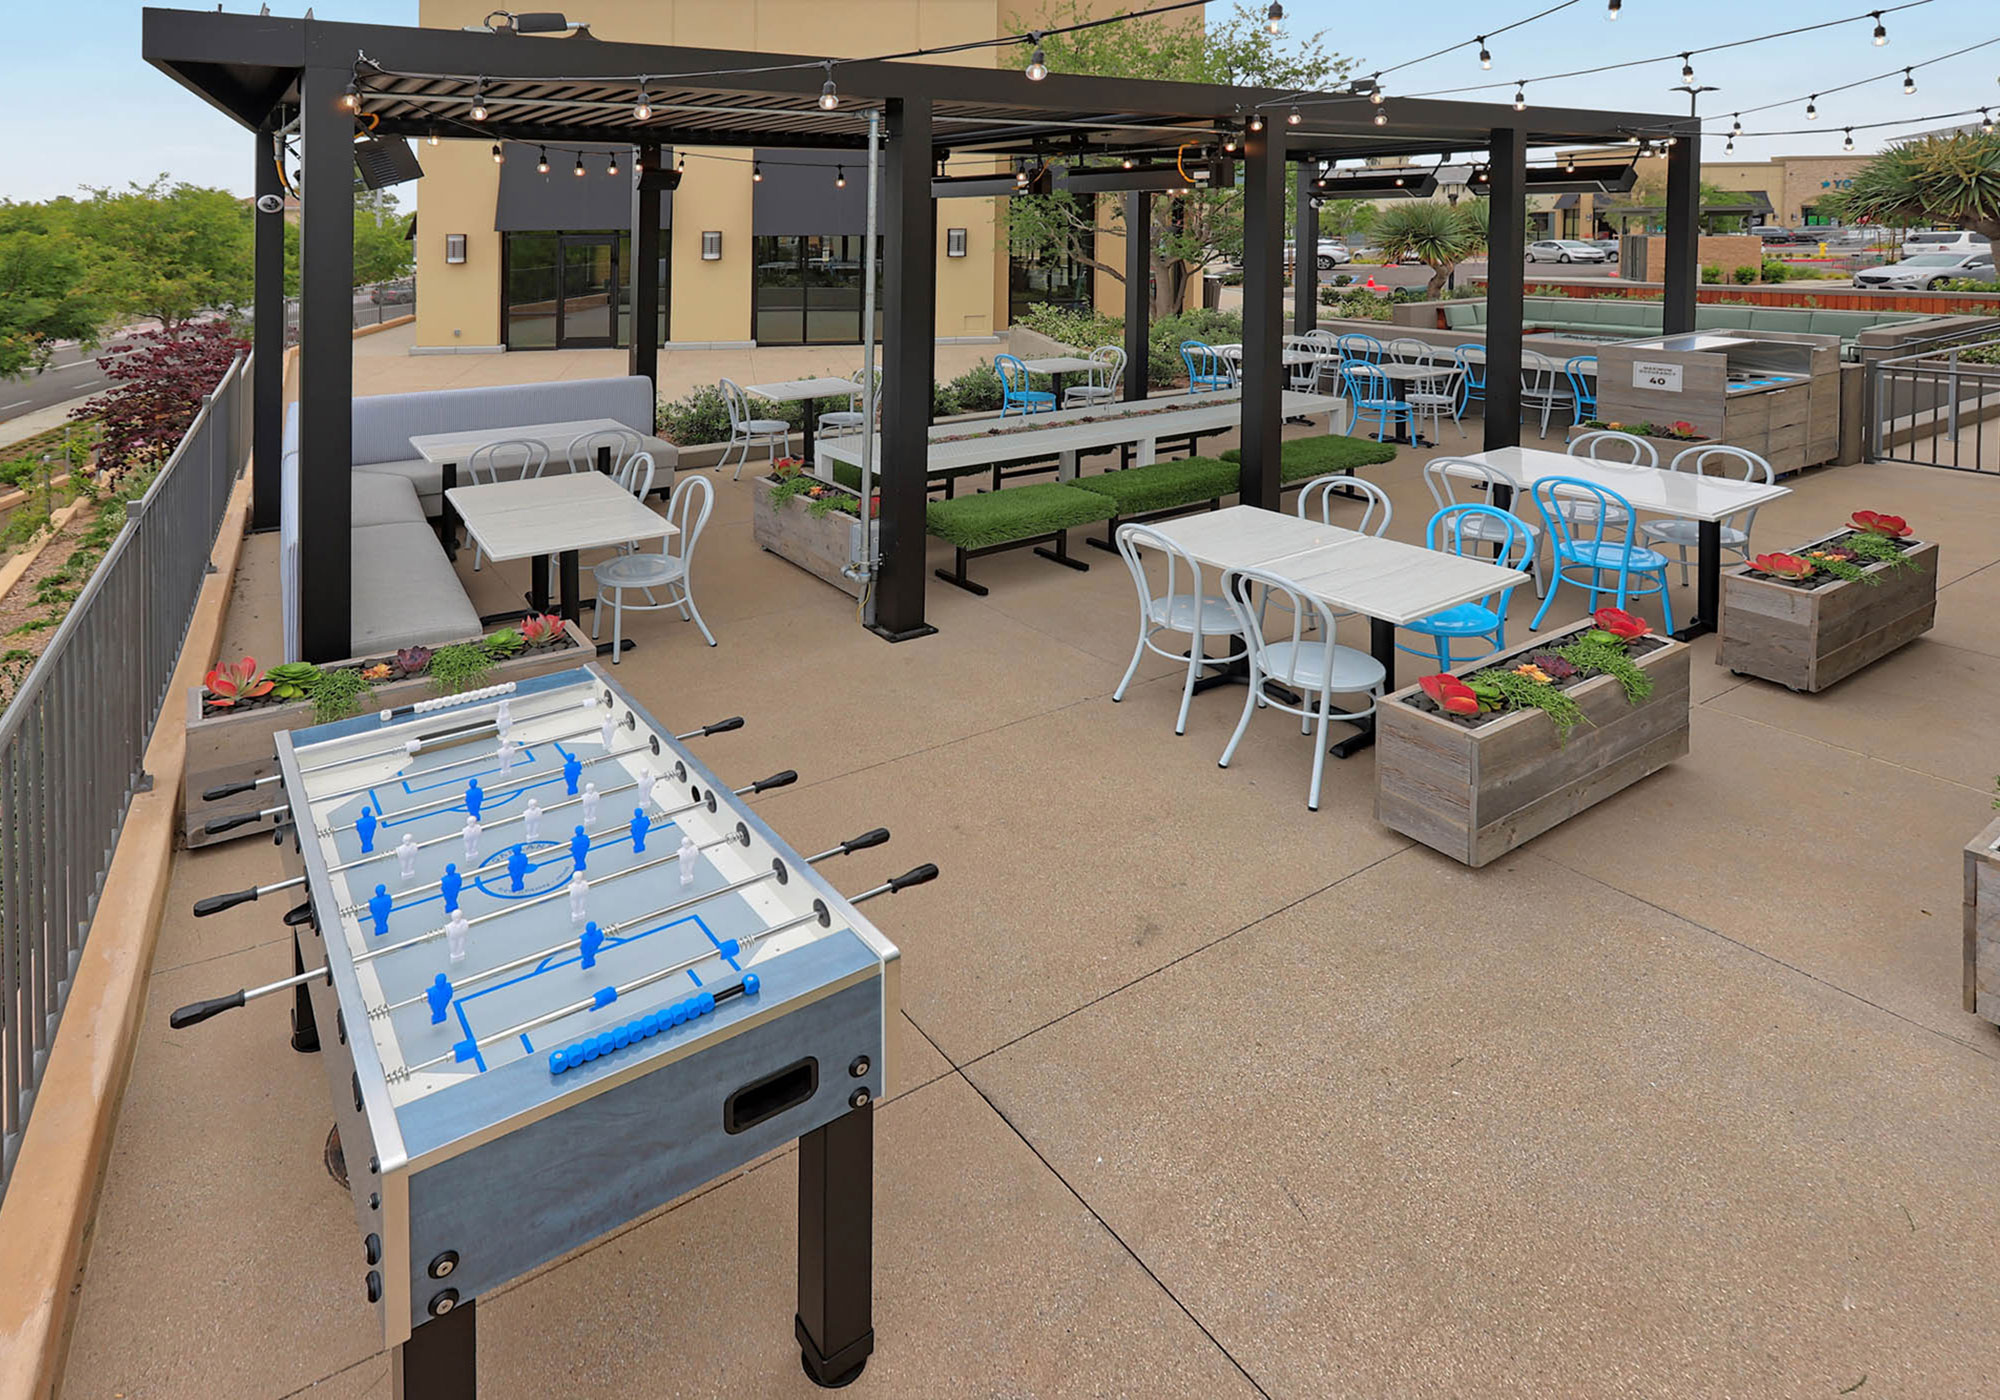 Outdoor patio with a foosball table